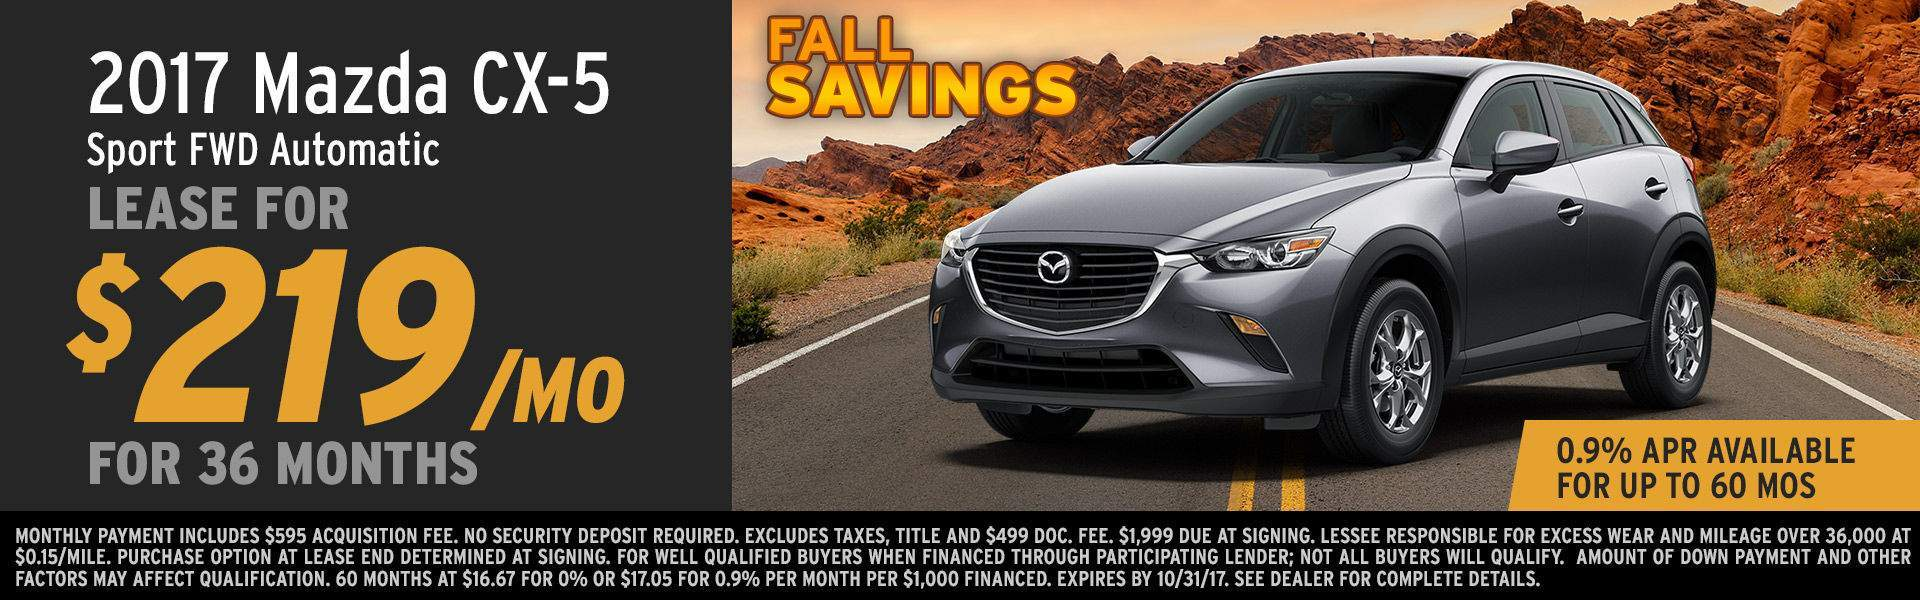 2017 CX-5 Lease Special at Earnhardt Mazda